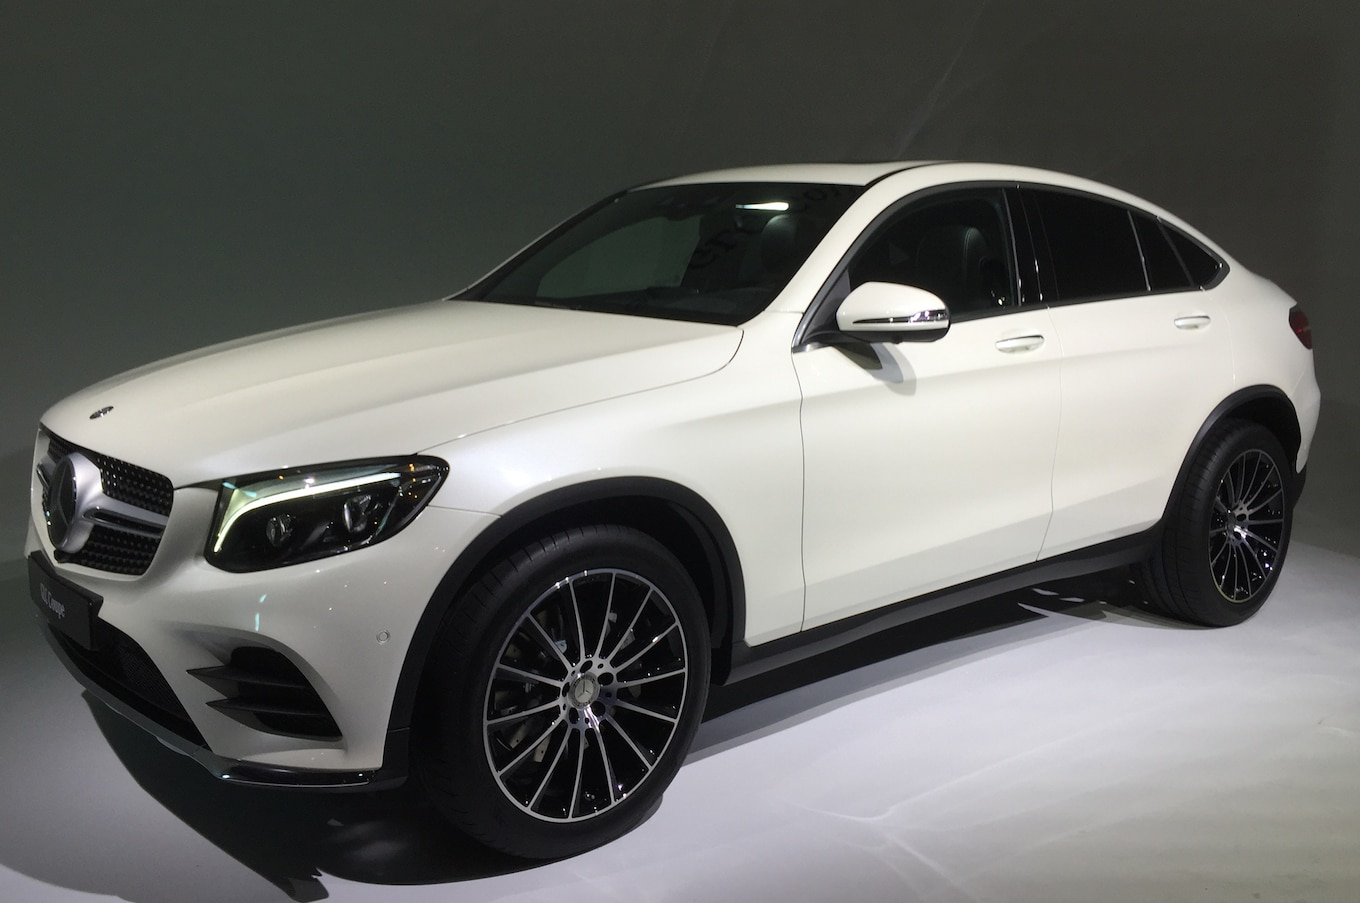 2017 Mercedesbenz Glc Coupe First Look Review  Motor Trend